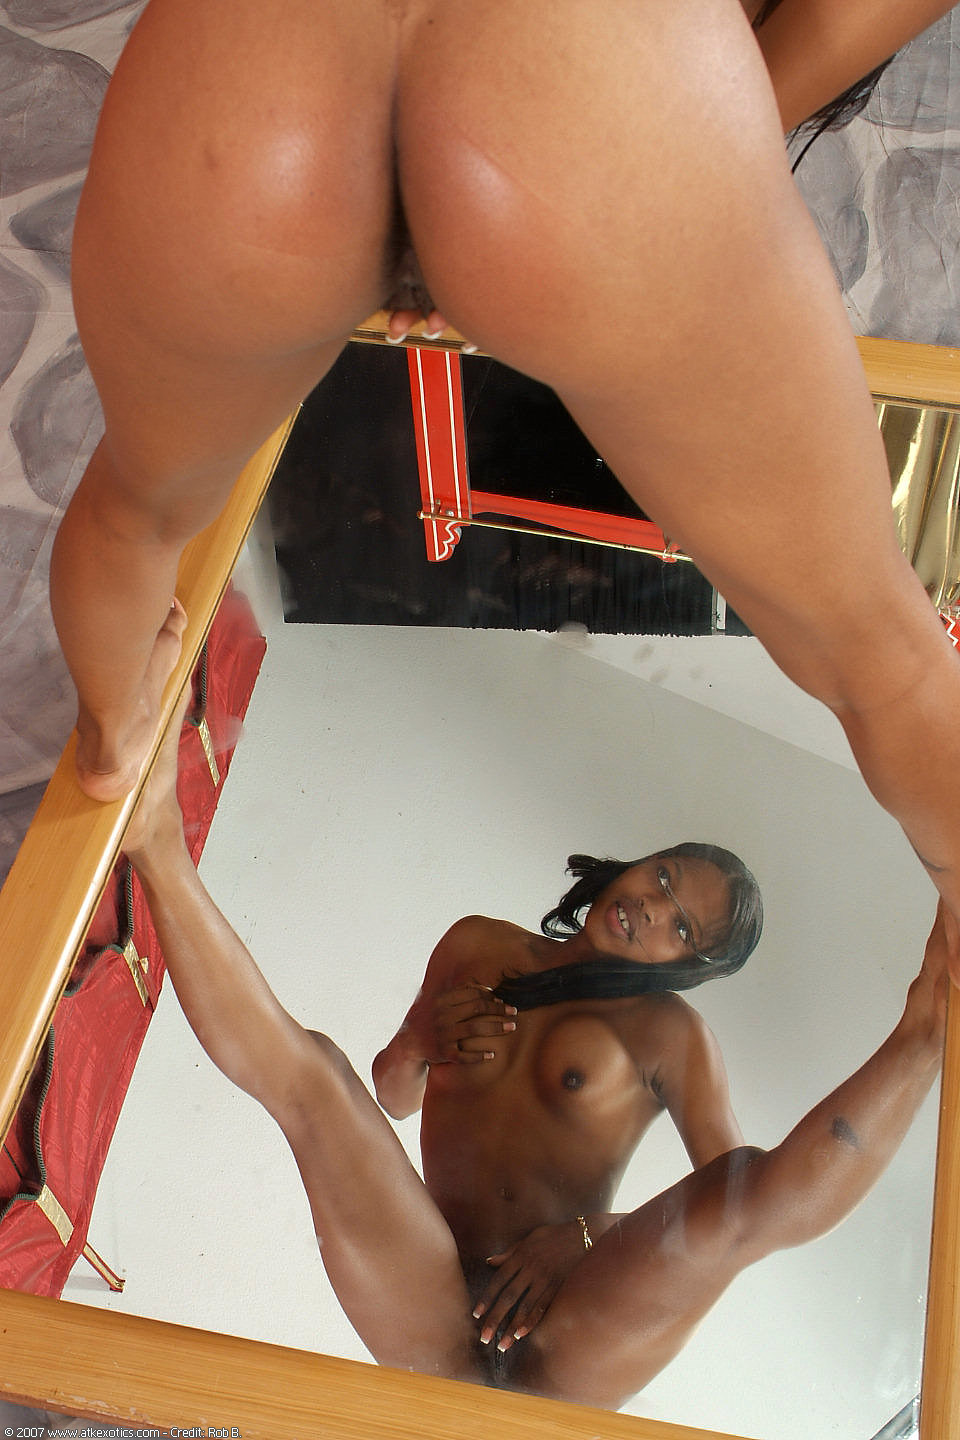 Only at ATK EXOTICS you'll find: ebony on ivory!